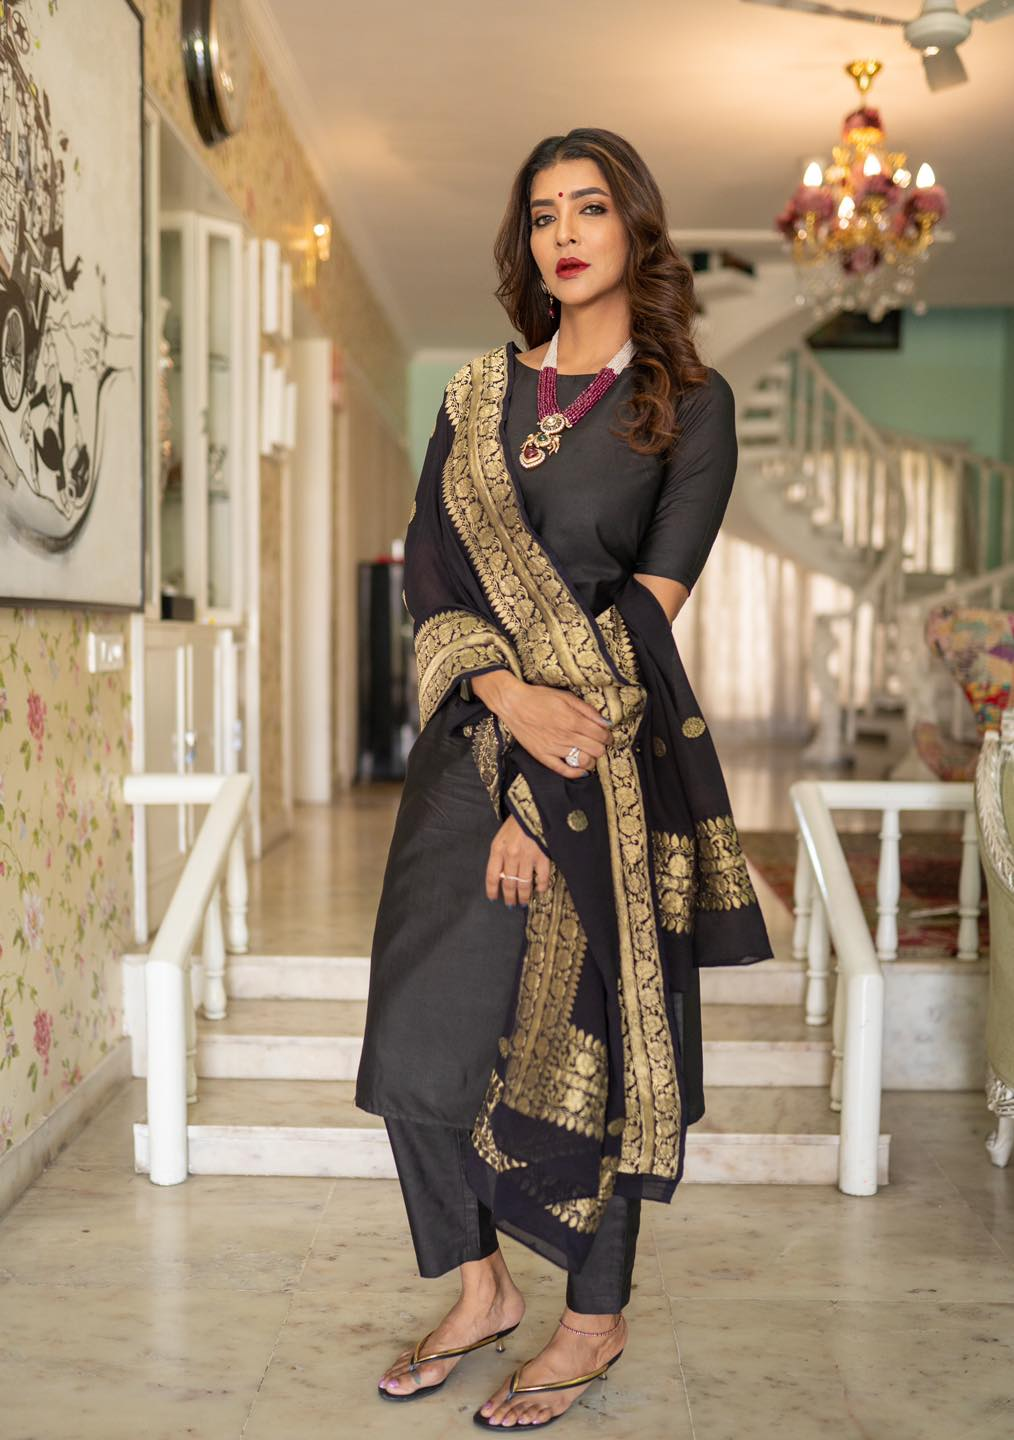 Nothing says classic like 